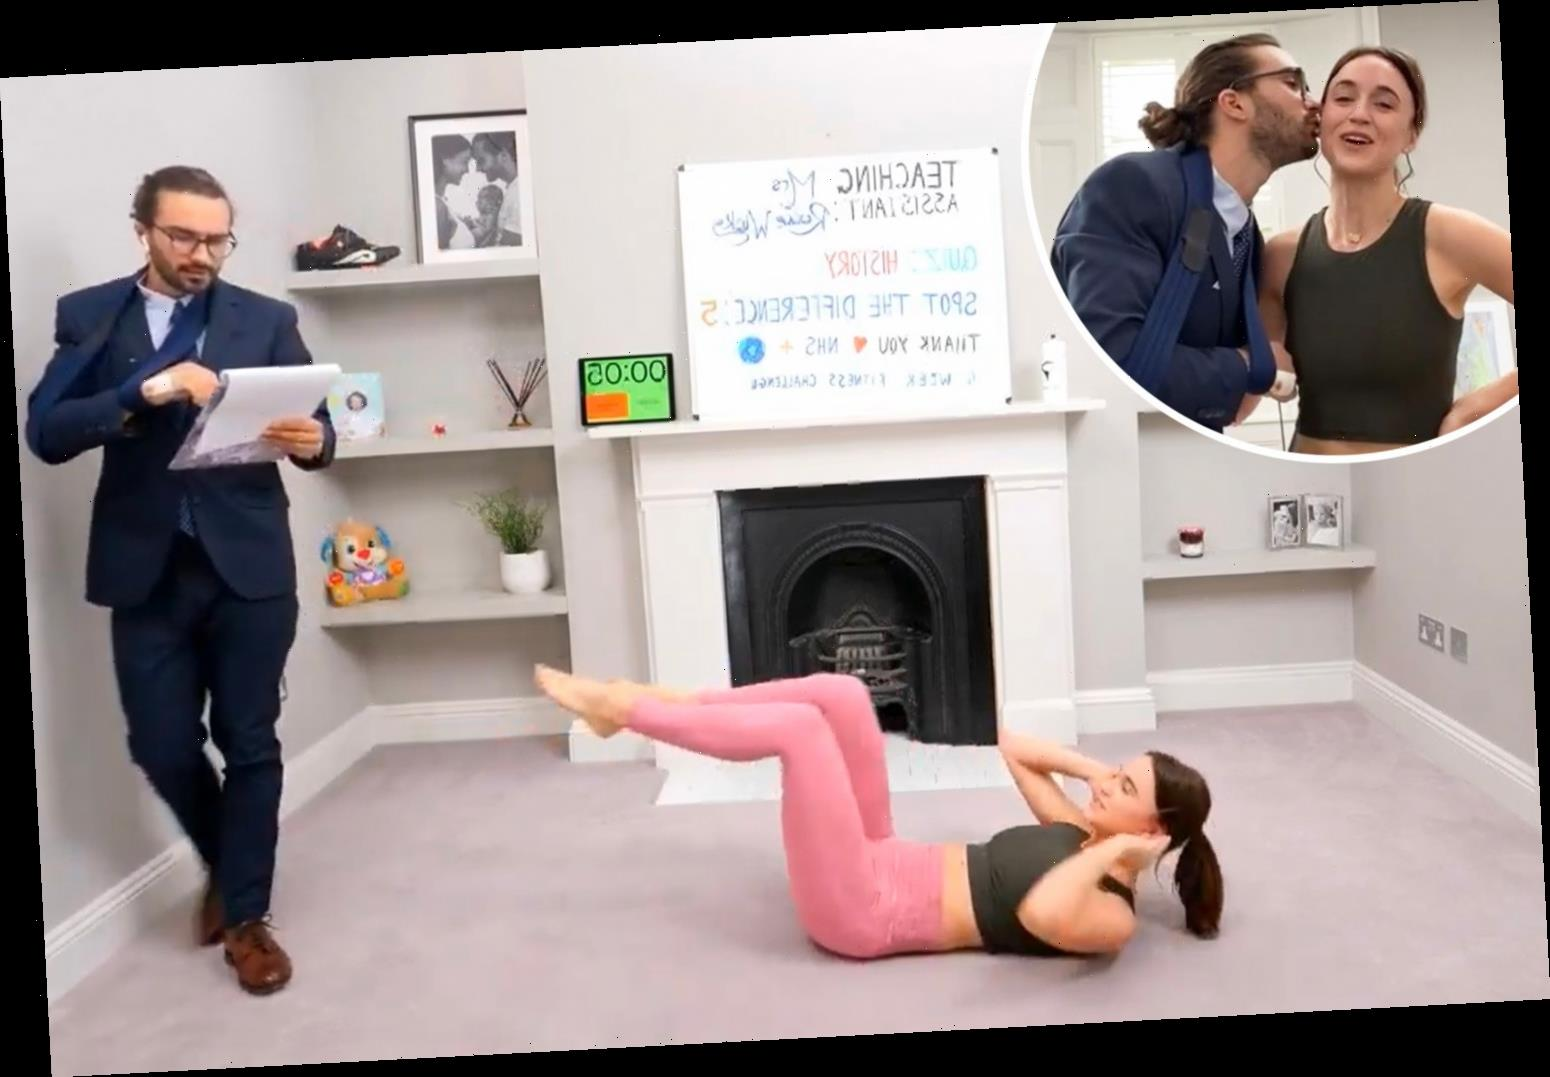 Joe Wicks' 'hot' model wife Rosie wins over fans as she takes over his workout who demand they become double act – The Sun